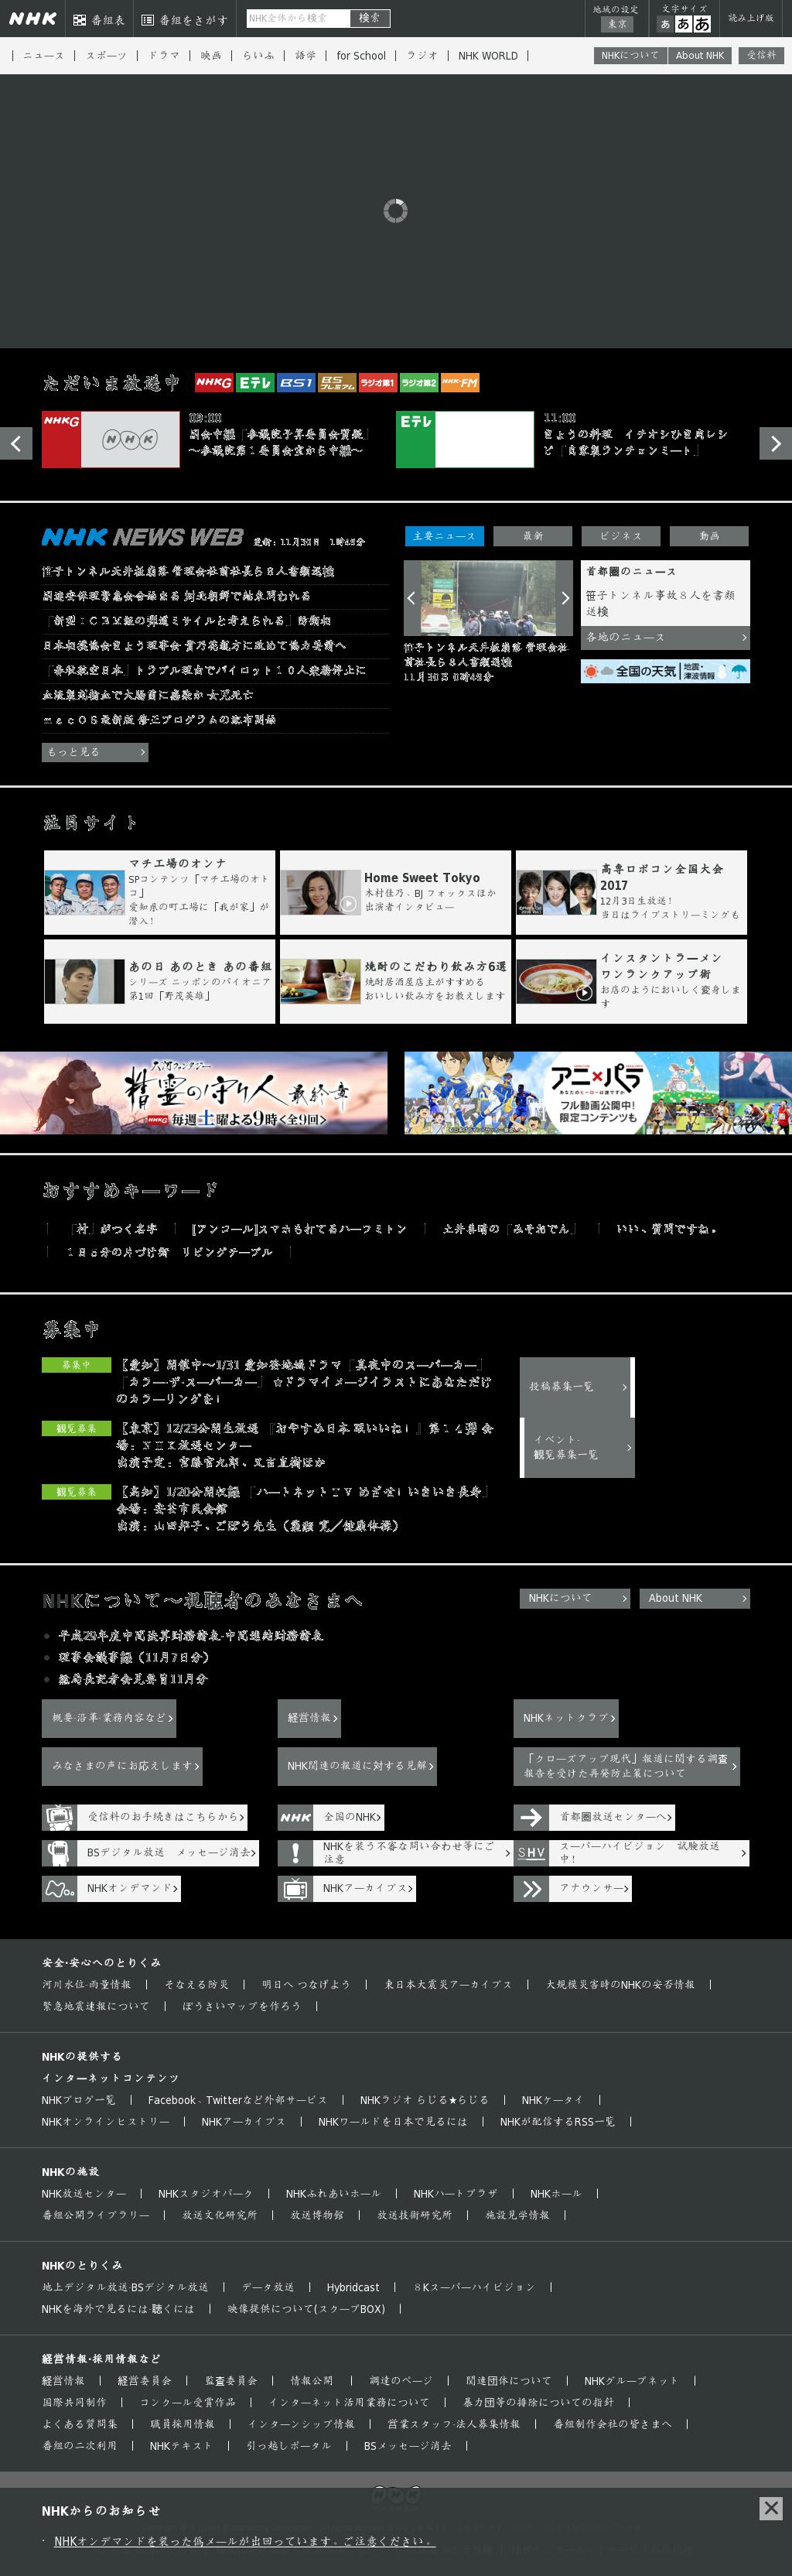 NHK Online at Thursday March 15, 2018, 6:07 a.m. UTC